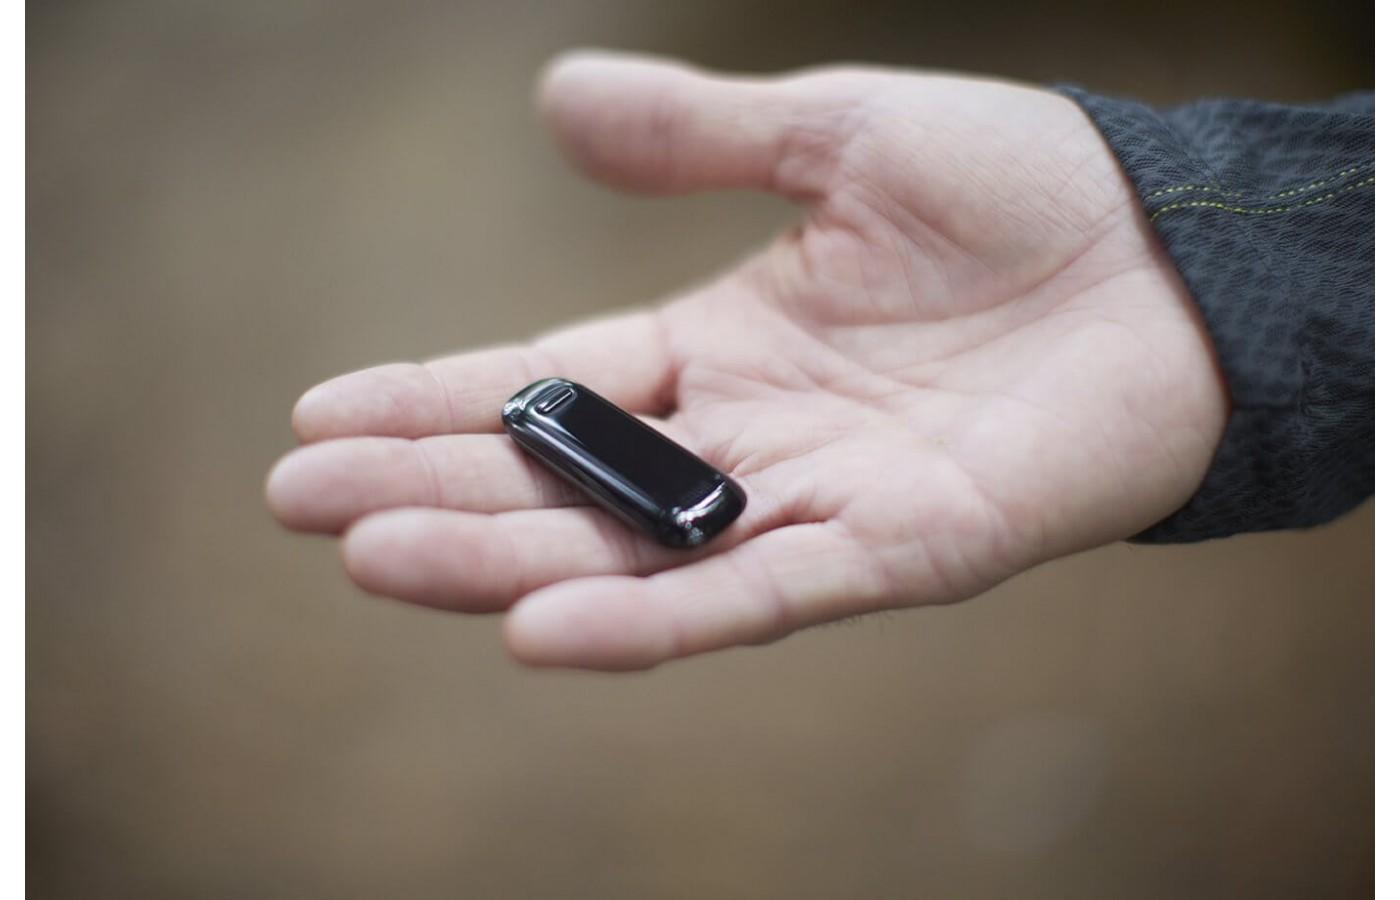 The Fitbit One is small and can be easily concealed